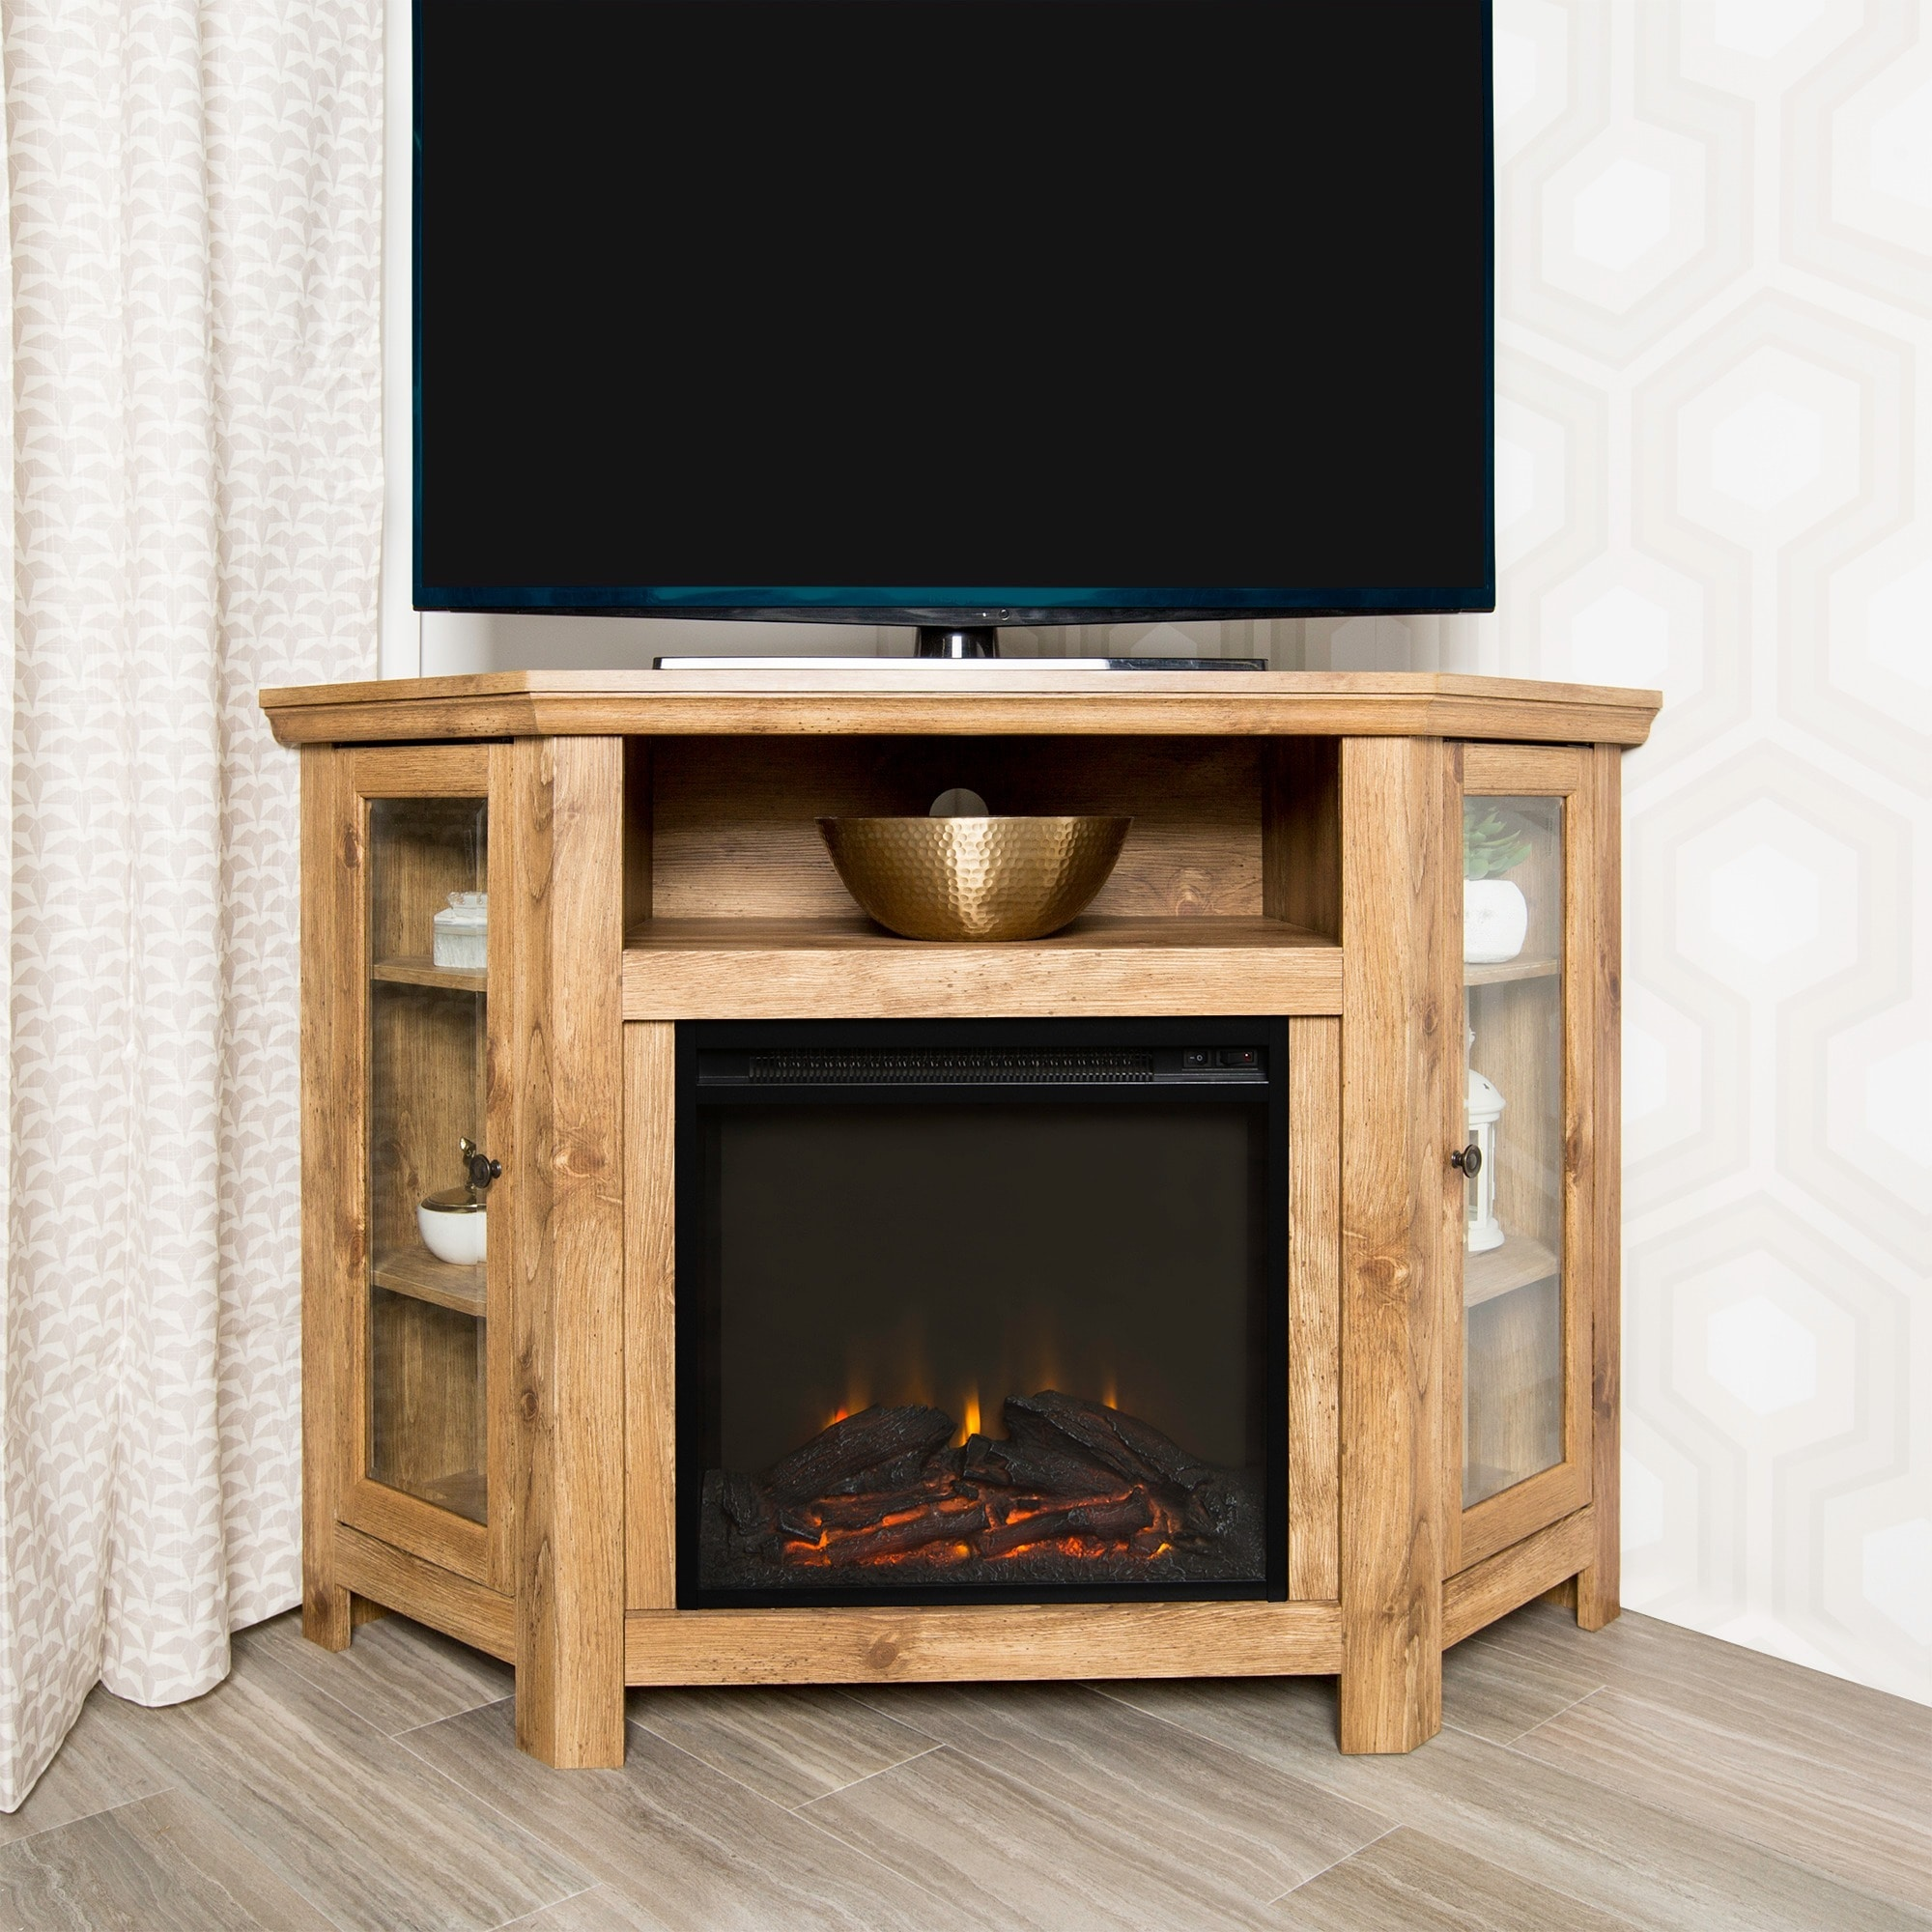 Fireplace Tv Combo Overstock Online Shopping Bedding Furniture Electronics Jewelry Clothing More